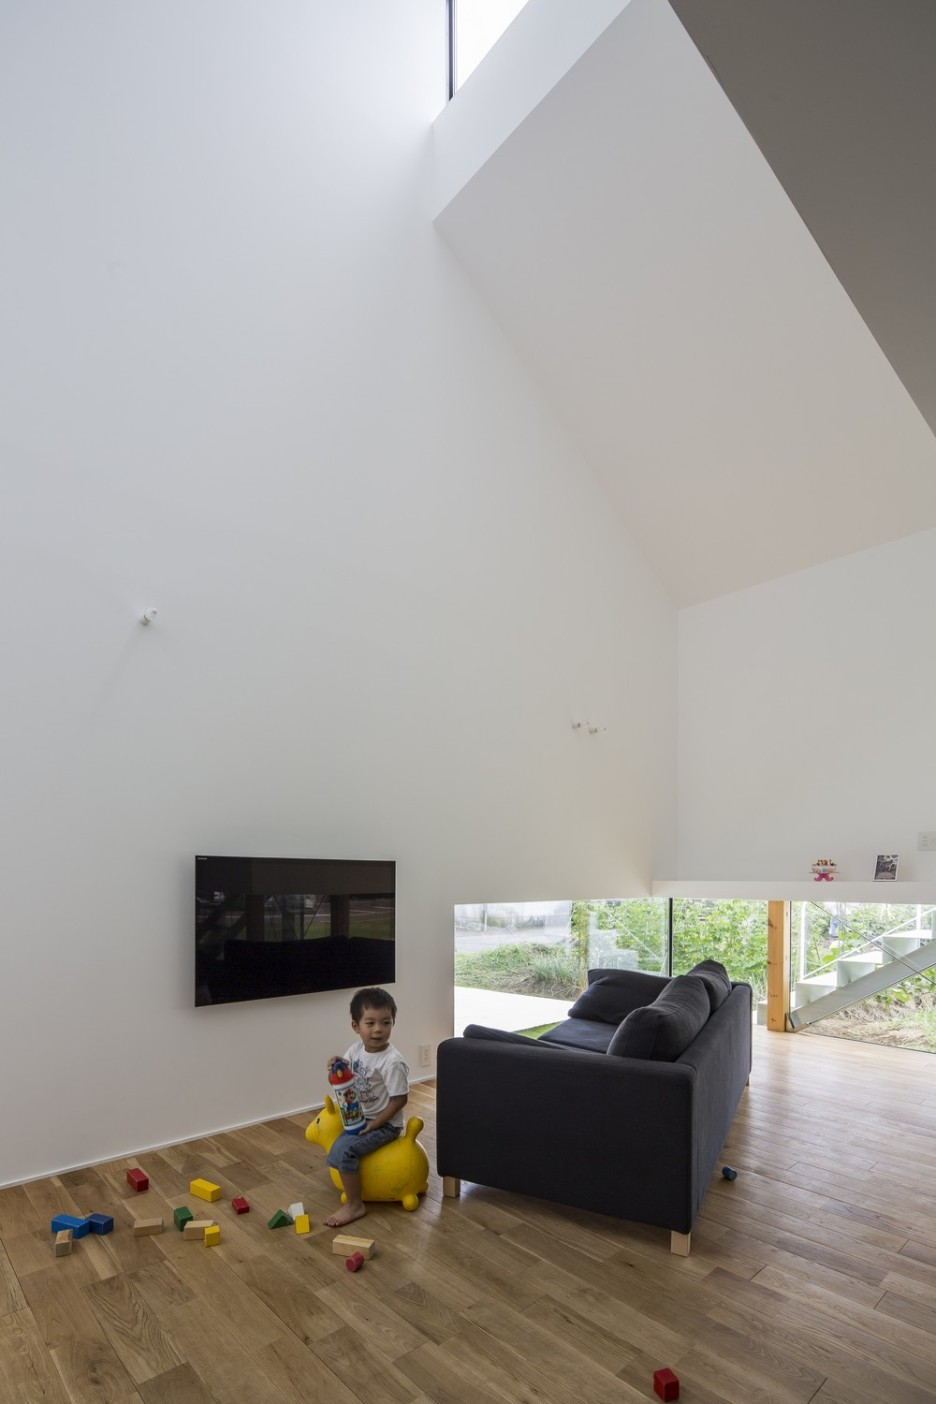 Modern Japanese Architecture Home Gives Inspiring Design Idea: Comfortable Kawate Residence Home Design Interior In Living Room Decorated With Black Fabric Sofa Furniture In Modern Minimalist Design Ideas